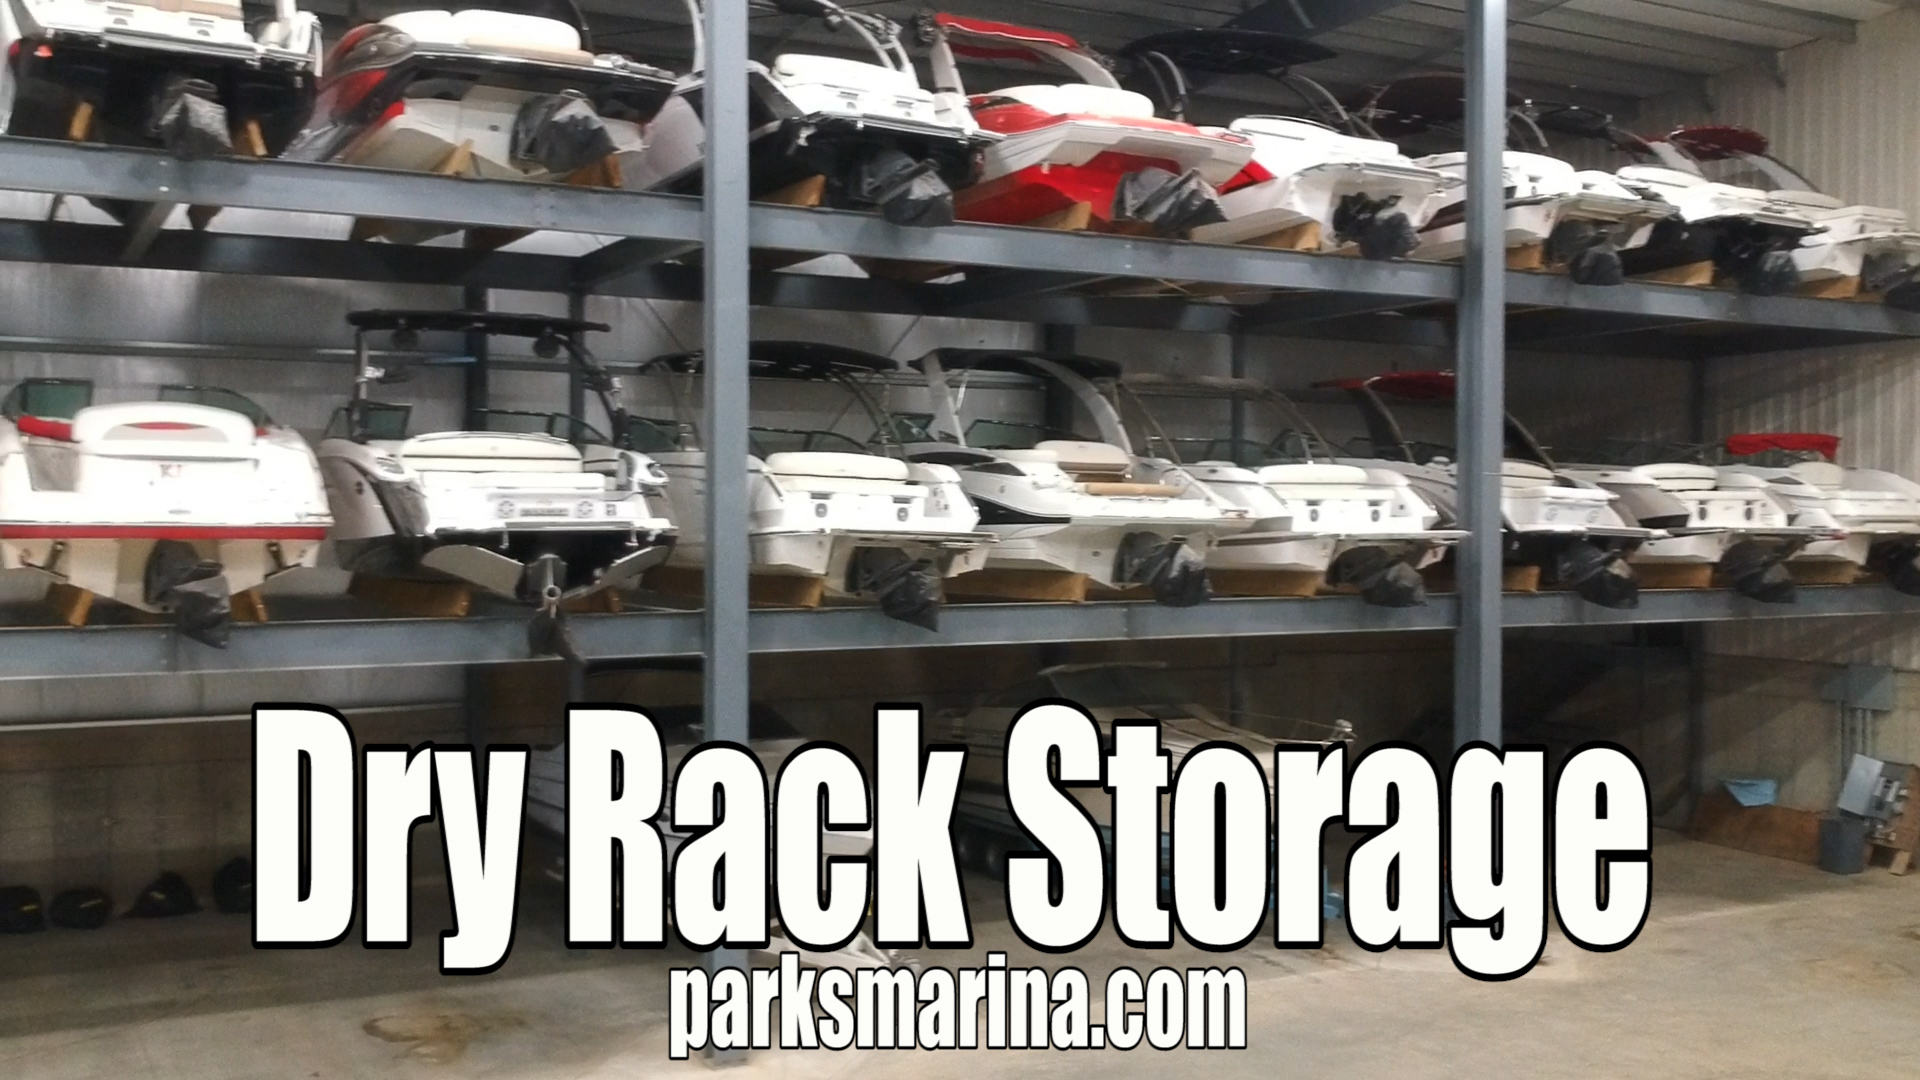 Why is Dry Rack storage the easiest boating ever?